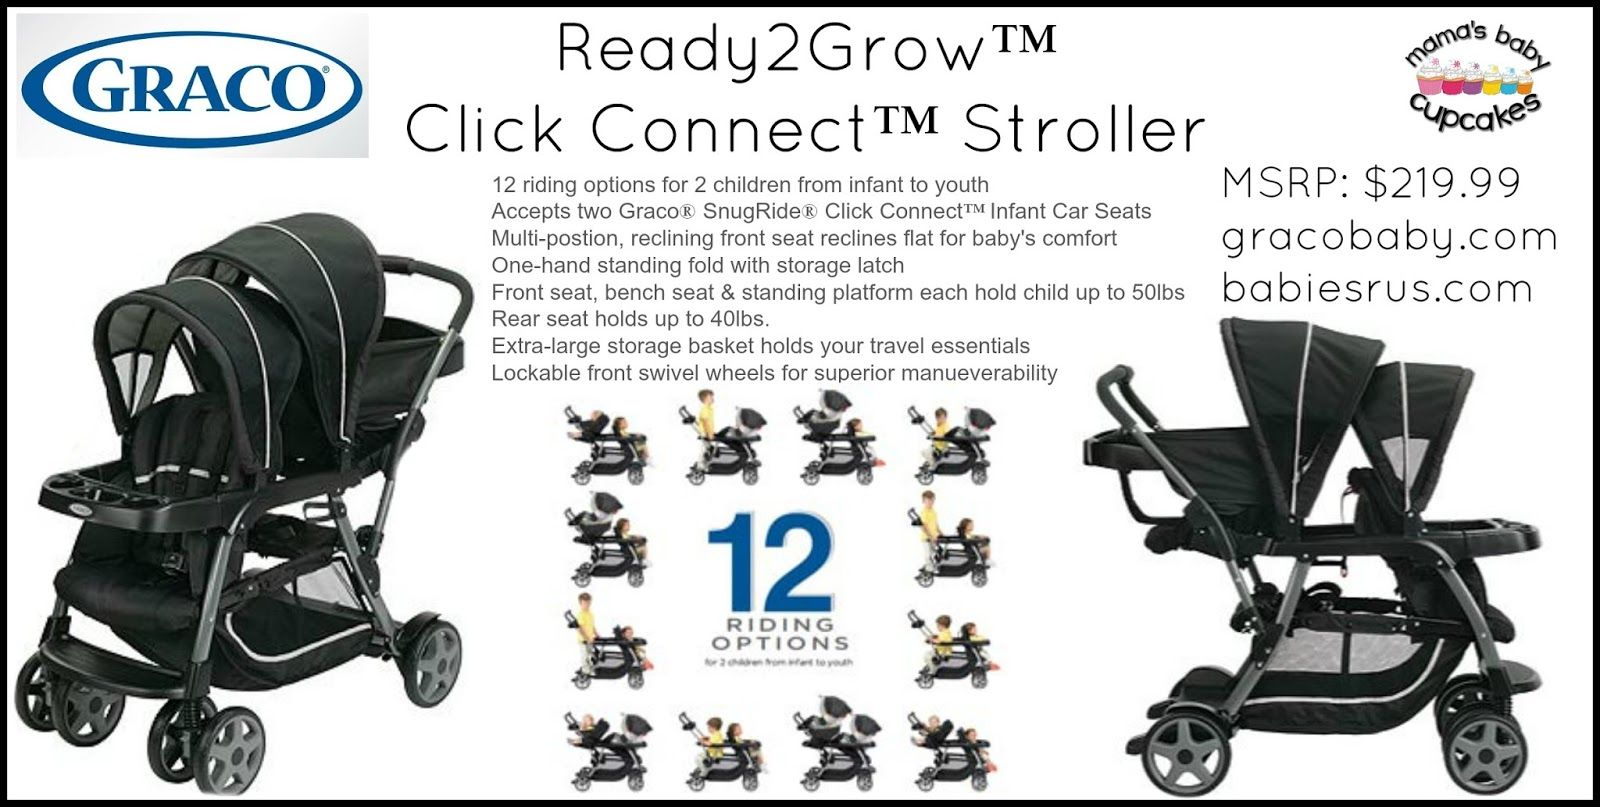 Graco Ready2Grow™ Click Connect™ Stroller Review. Double